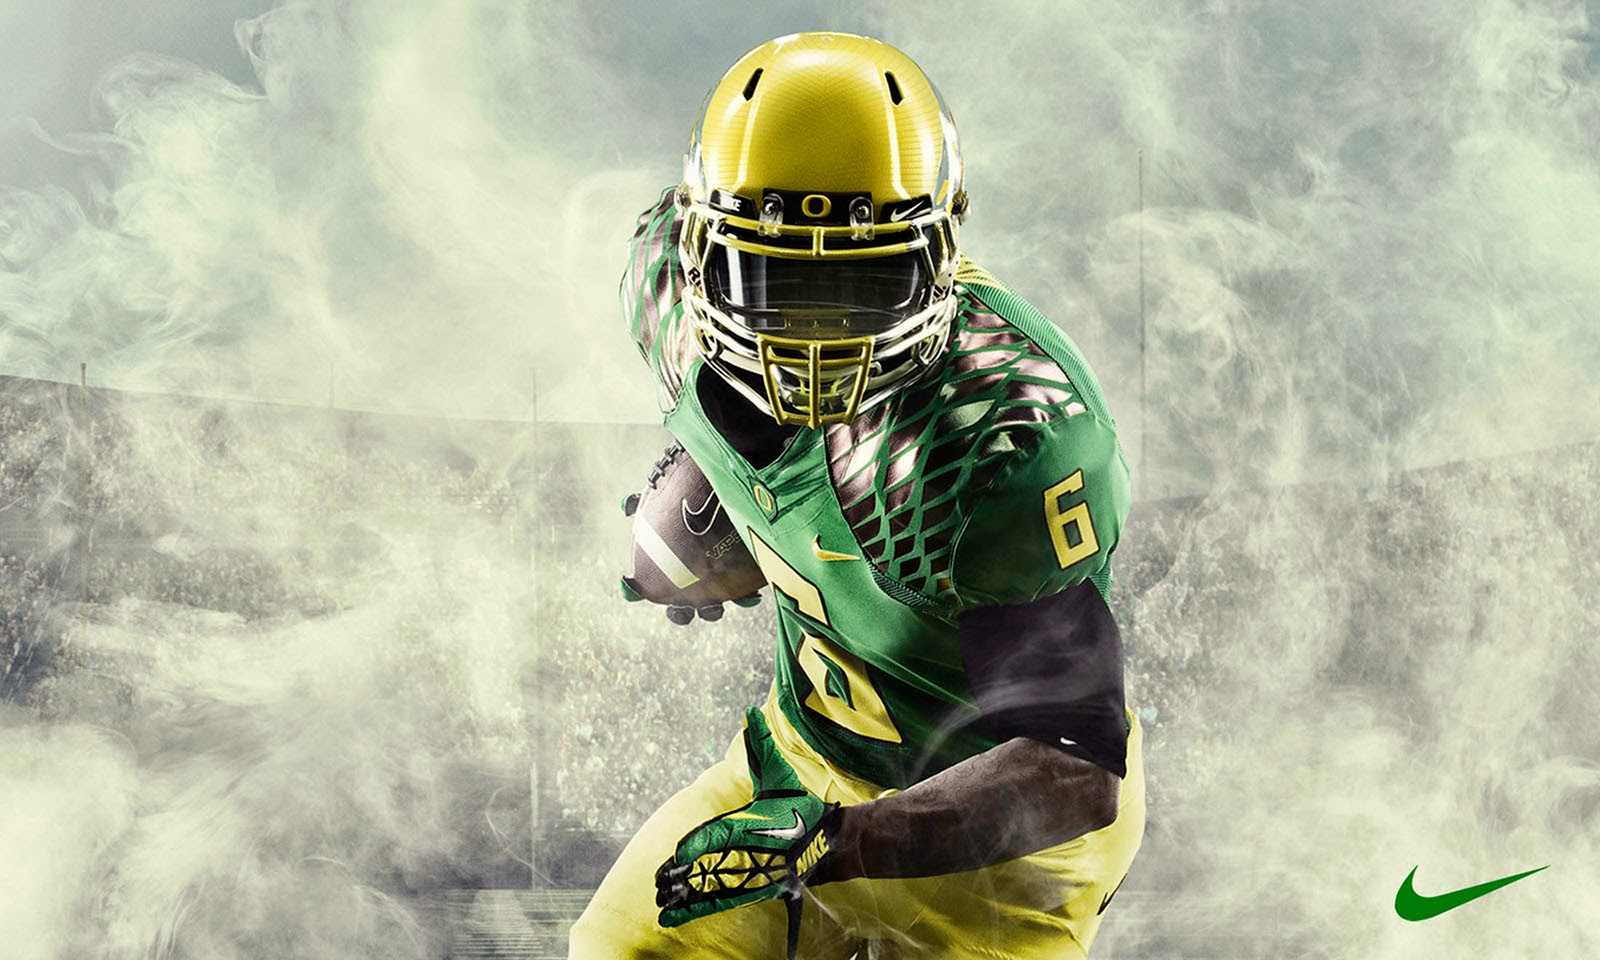 Oregon Ducks Football Hd Wallpaper Hd Wallpaper Movie Game